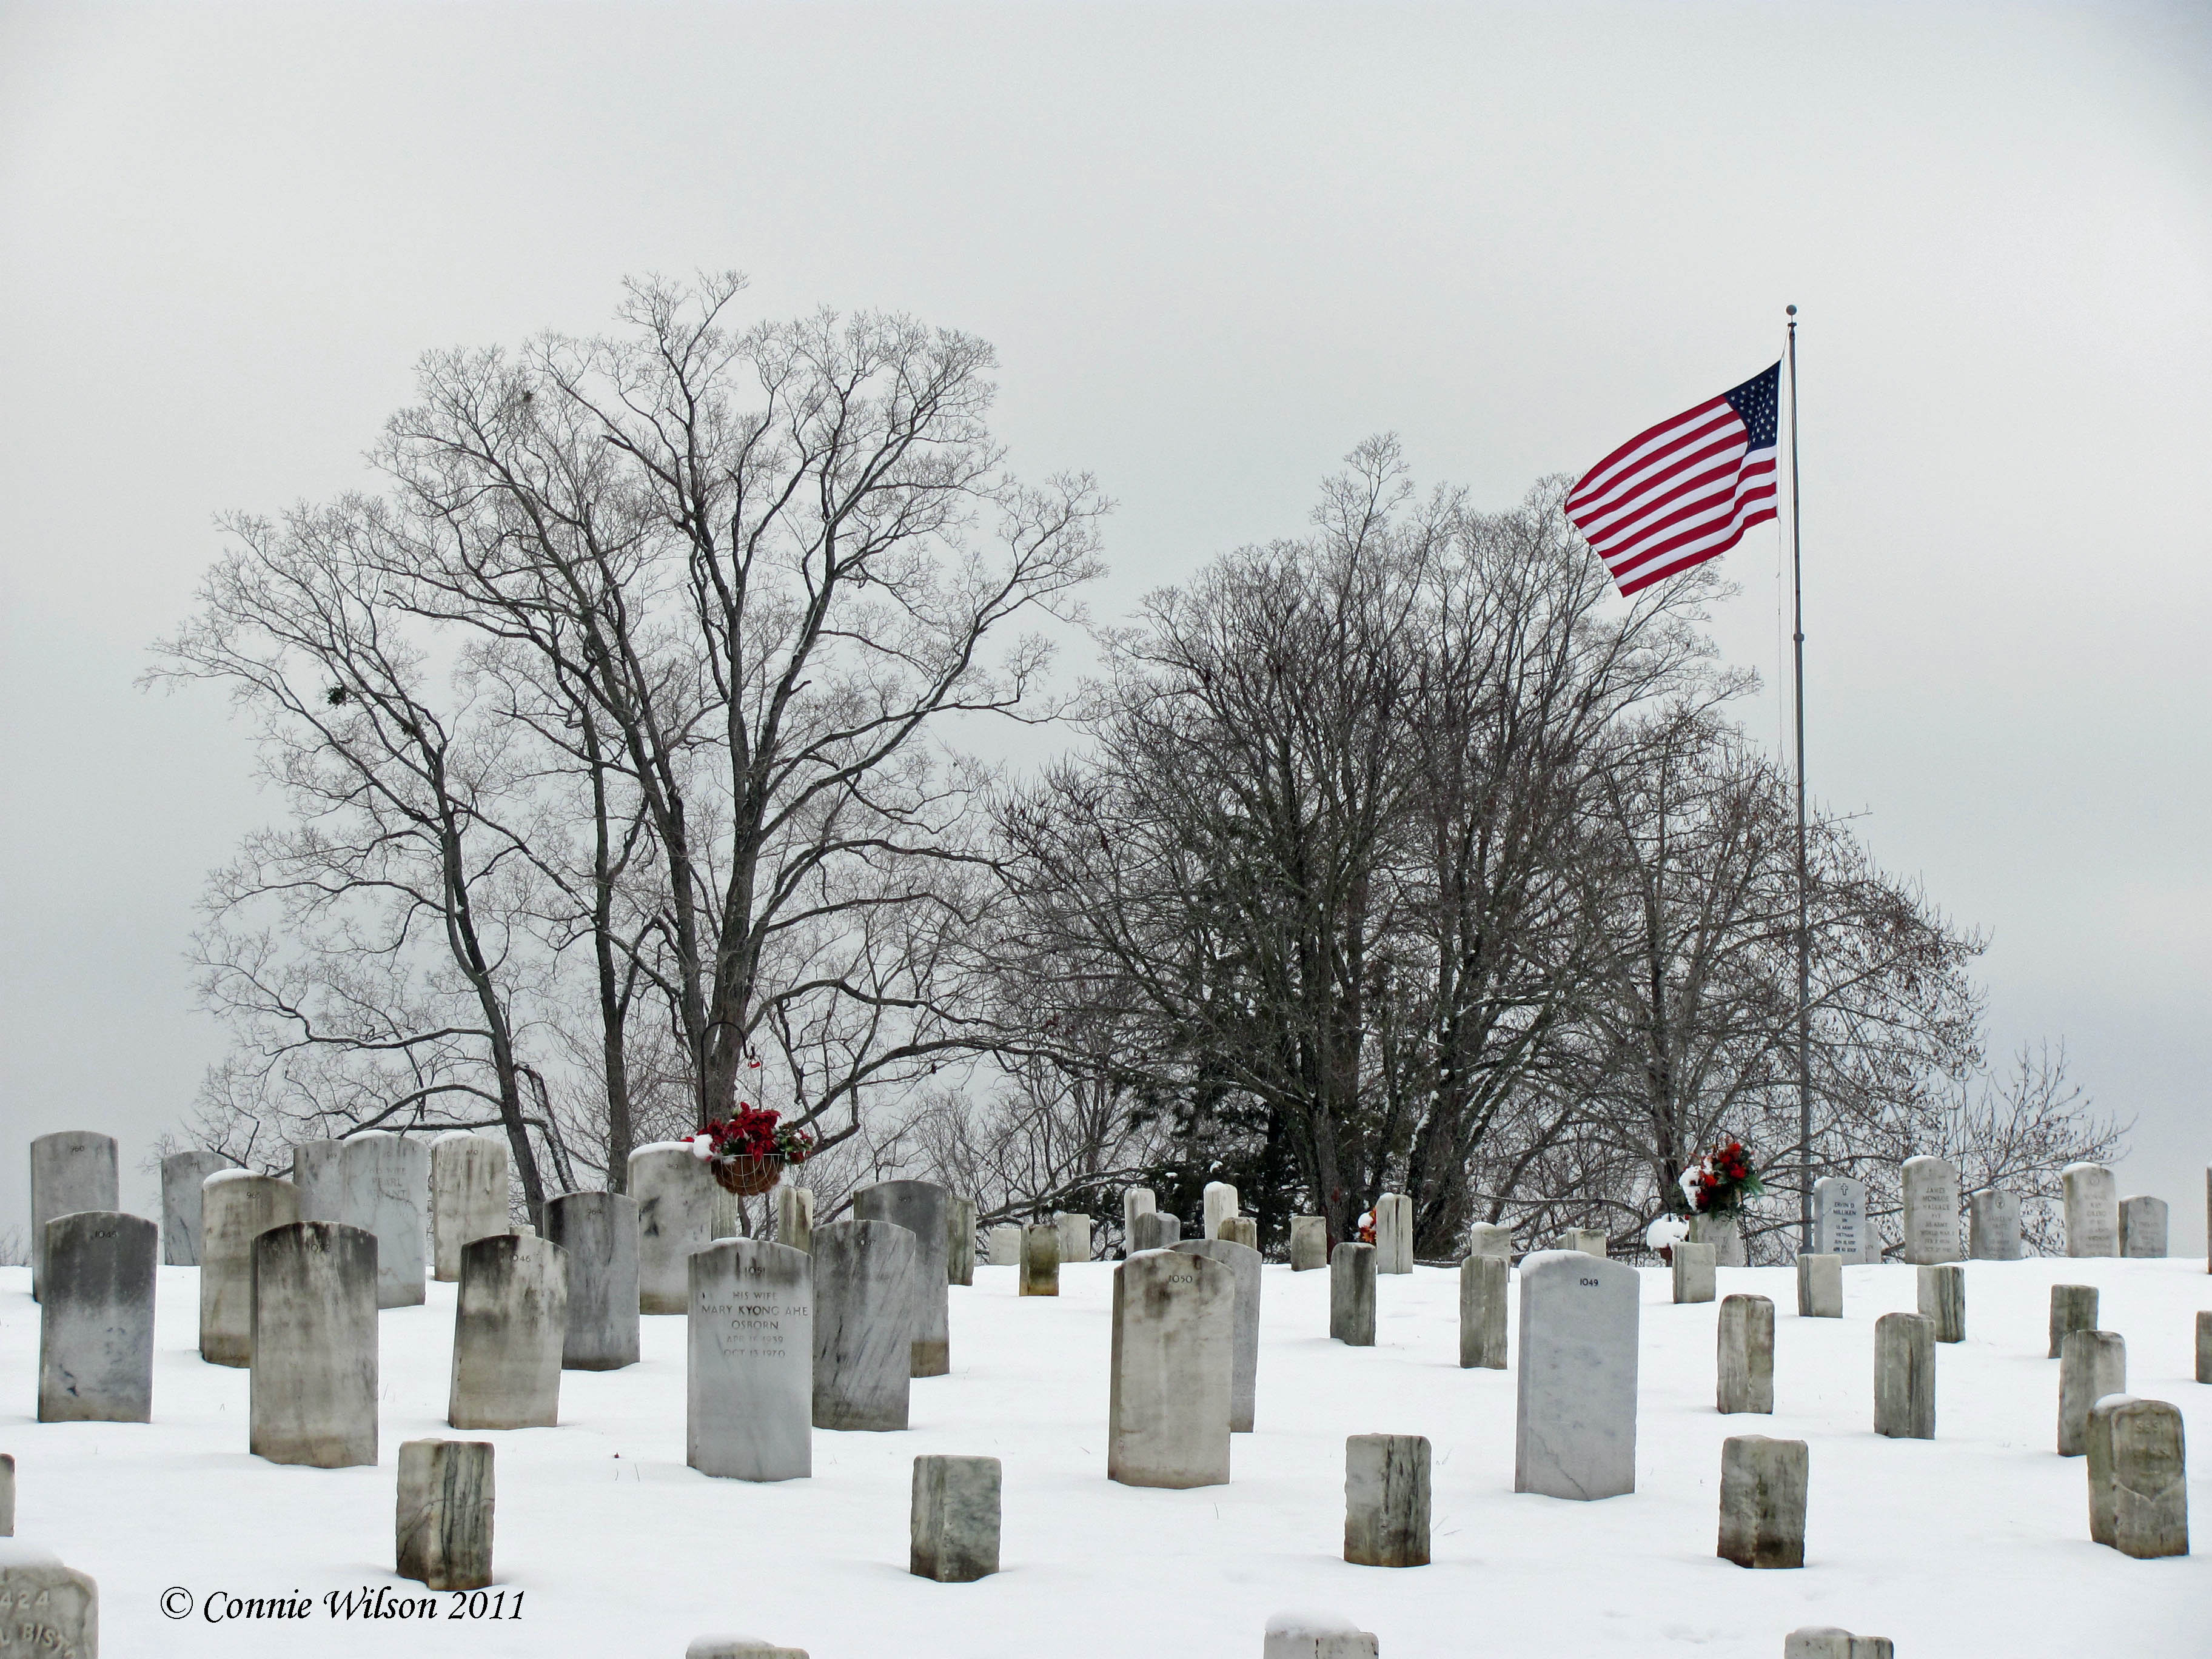 The National Cemetery, January 27, 2011